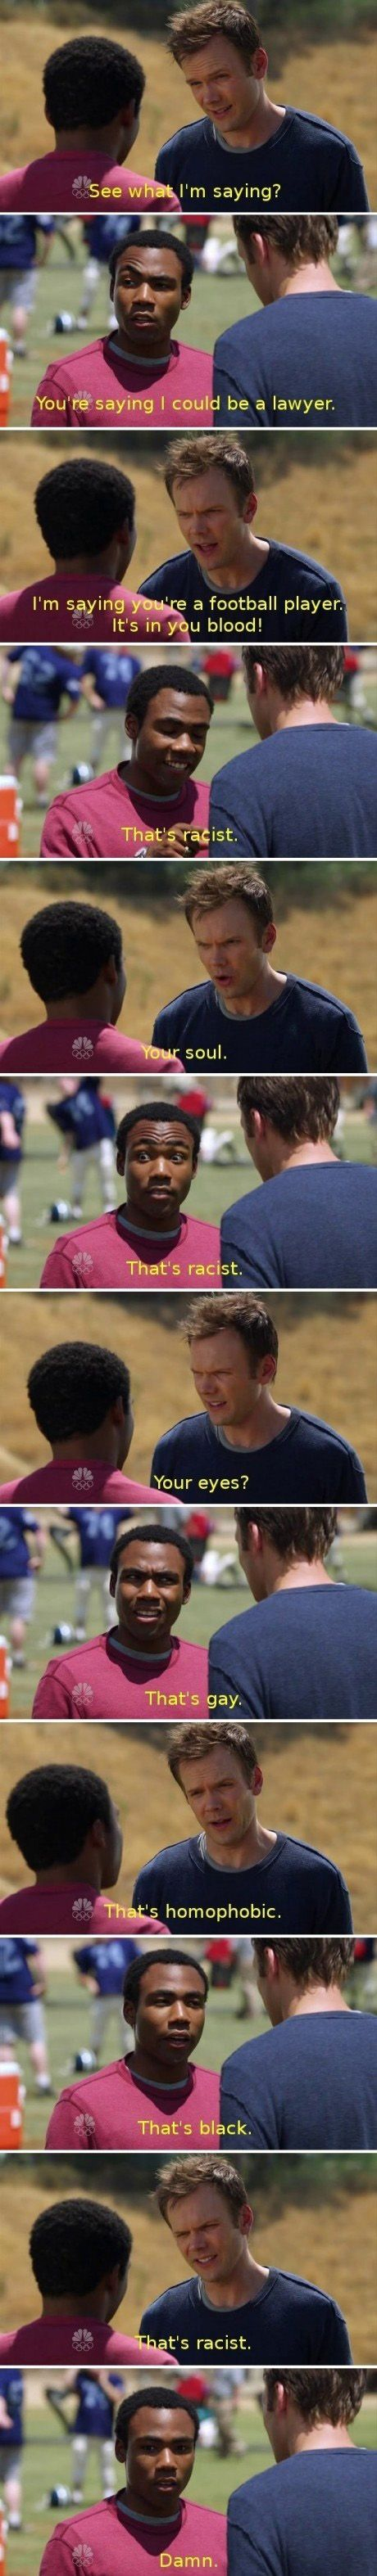 THIS. I love this show so freaking much